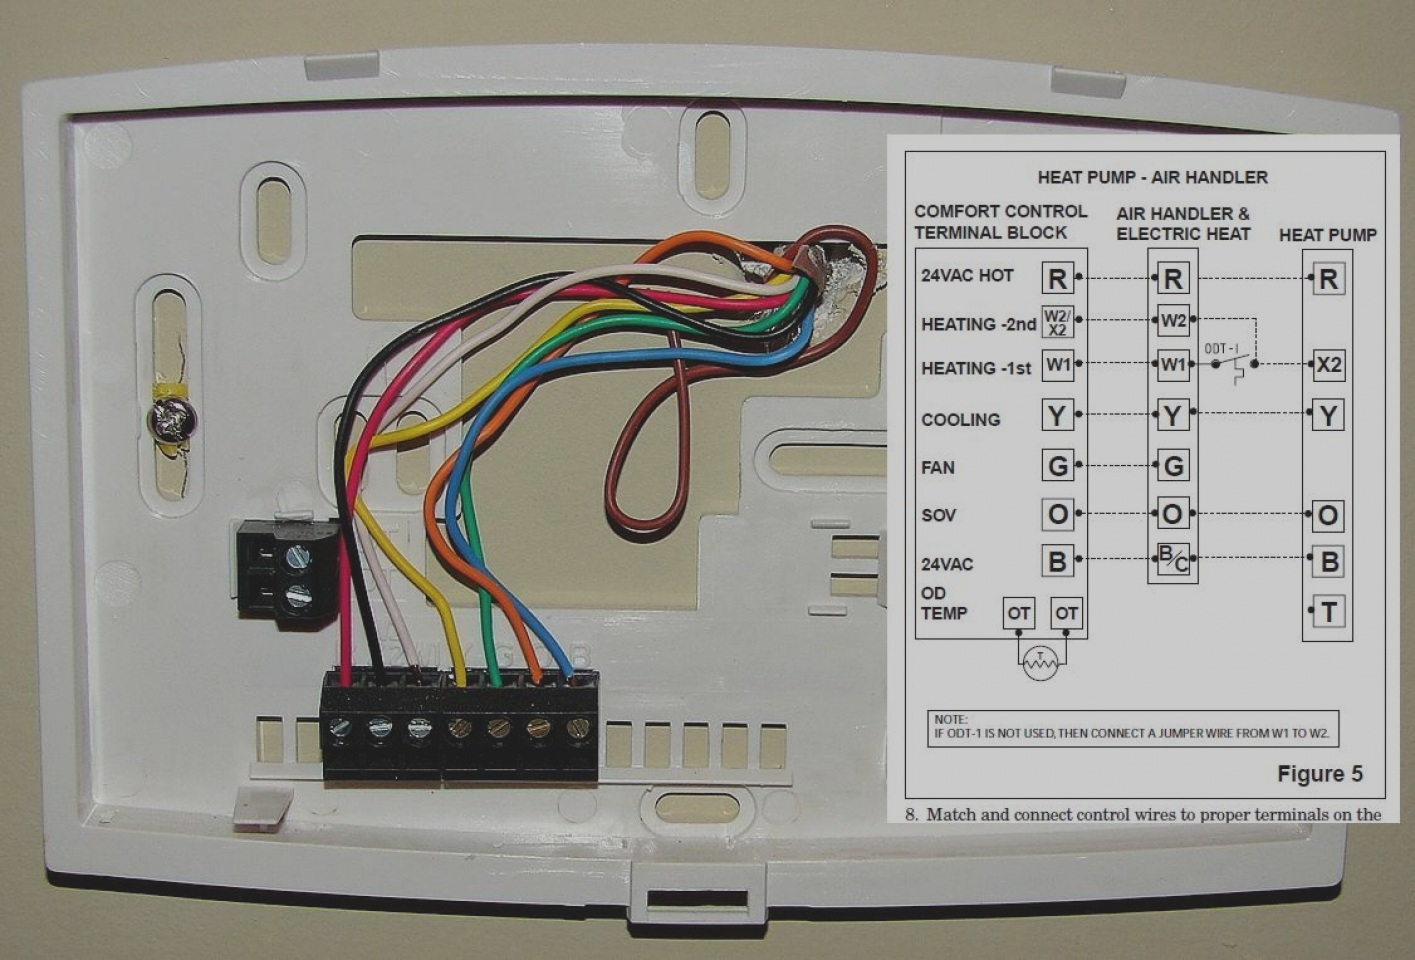 honeywell th5220d1003 wiring diagram honeywell thermostat th5220d1003 wiring diagram